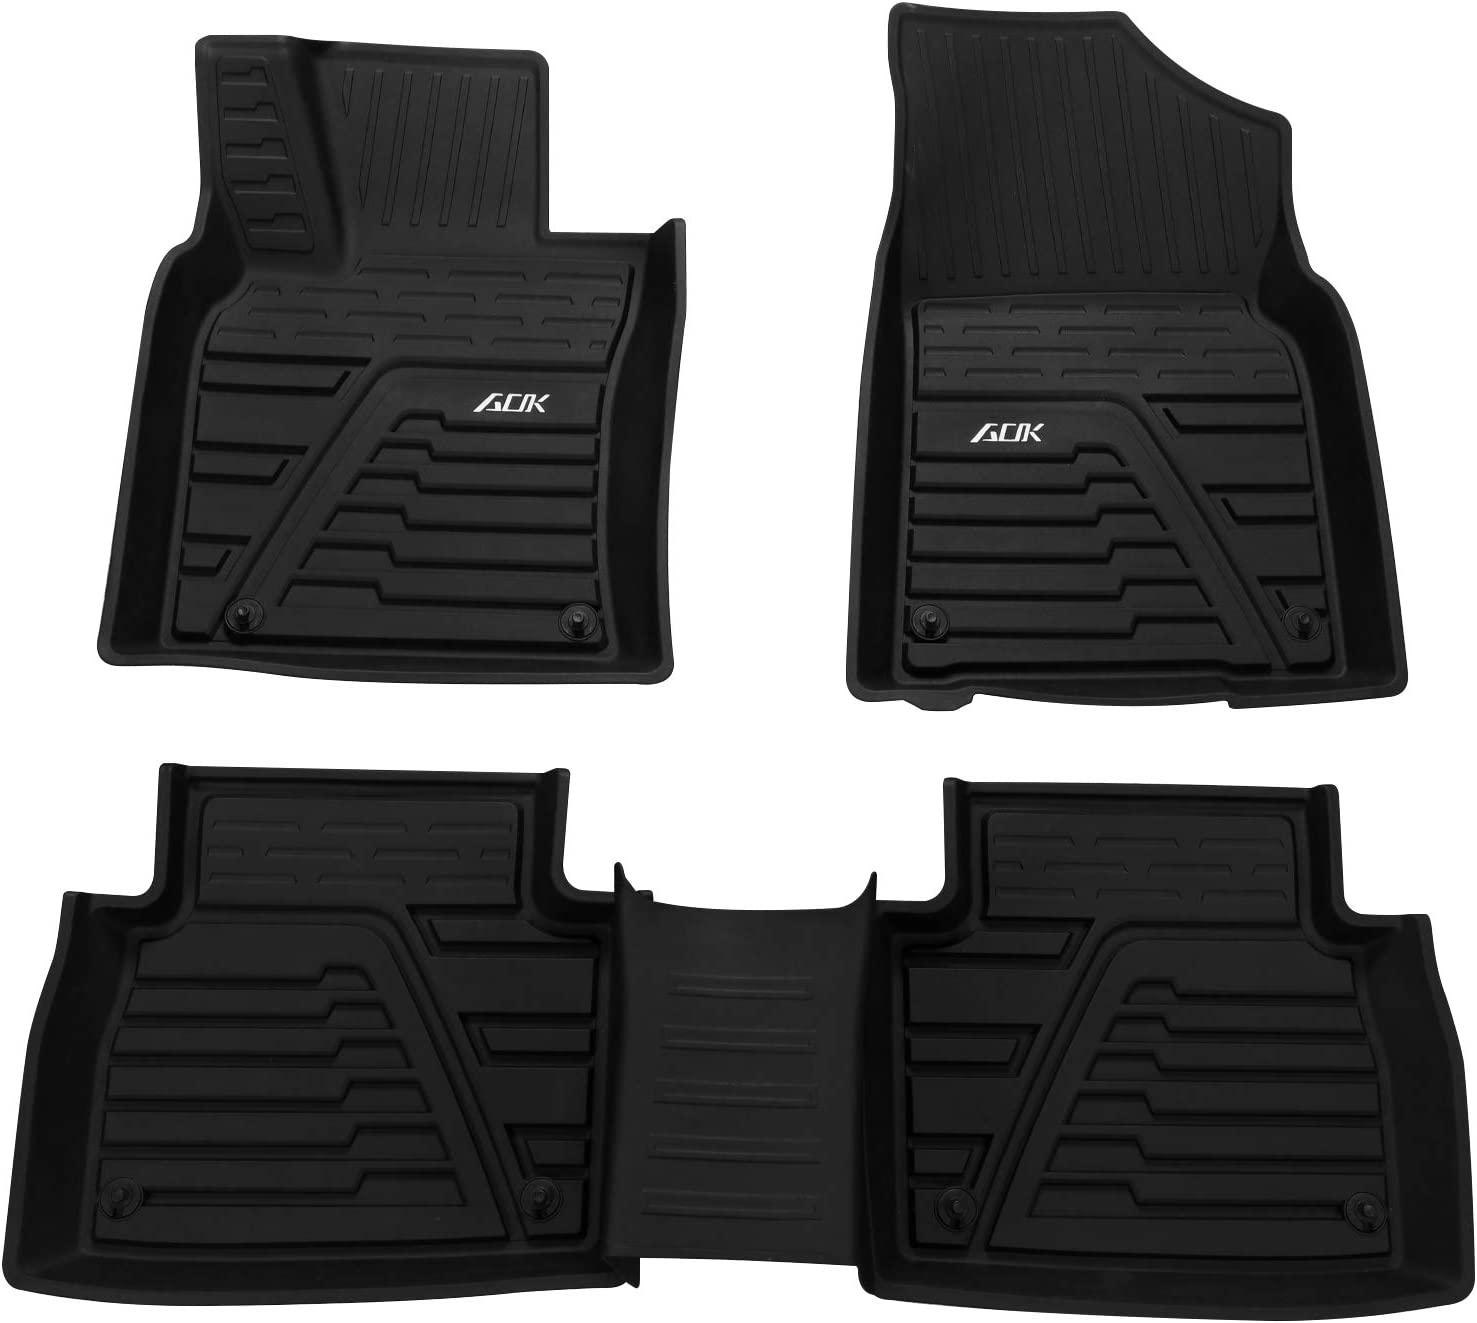 Auxko Floor Liners Compatible with Toyota Camry 2019+ Custom Fit Liners Front /& 2nd Seat Floor Mats with All-Weather Protection Durable and Non-Slippery Black TPE